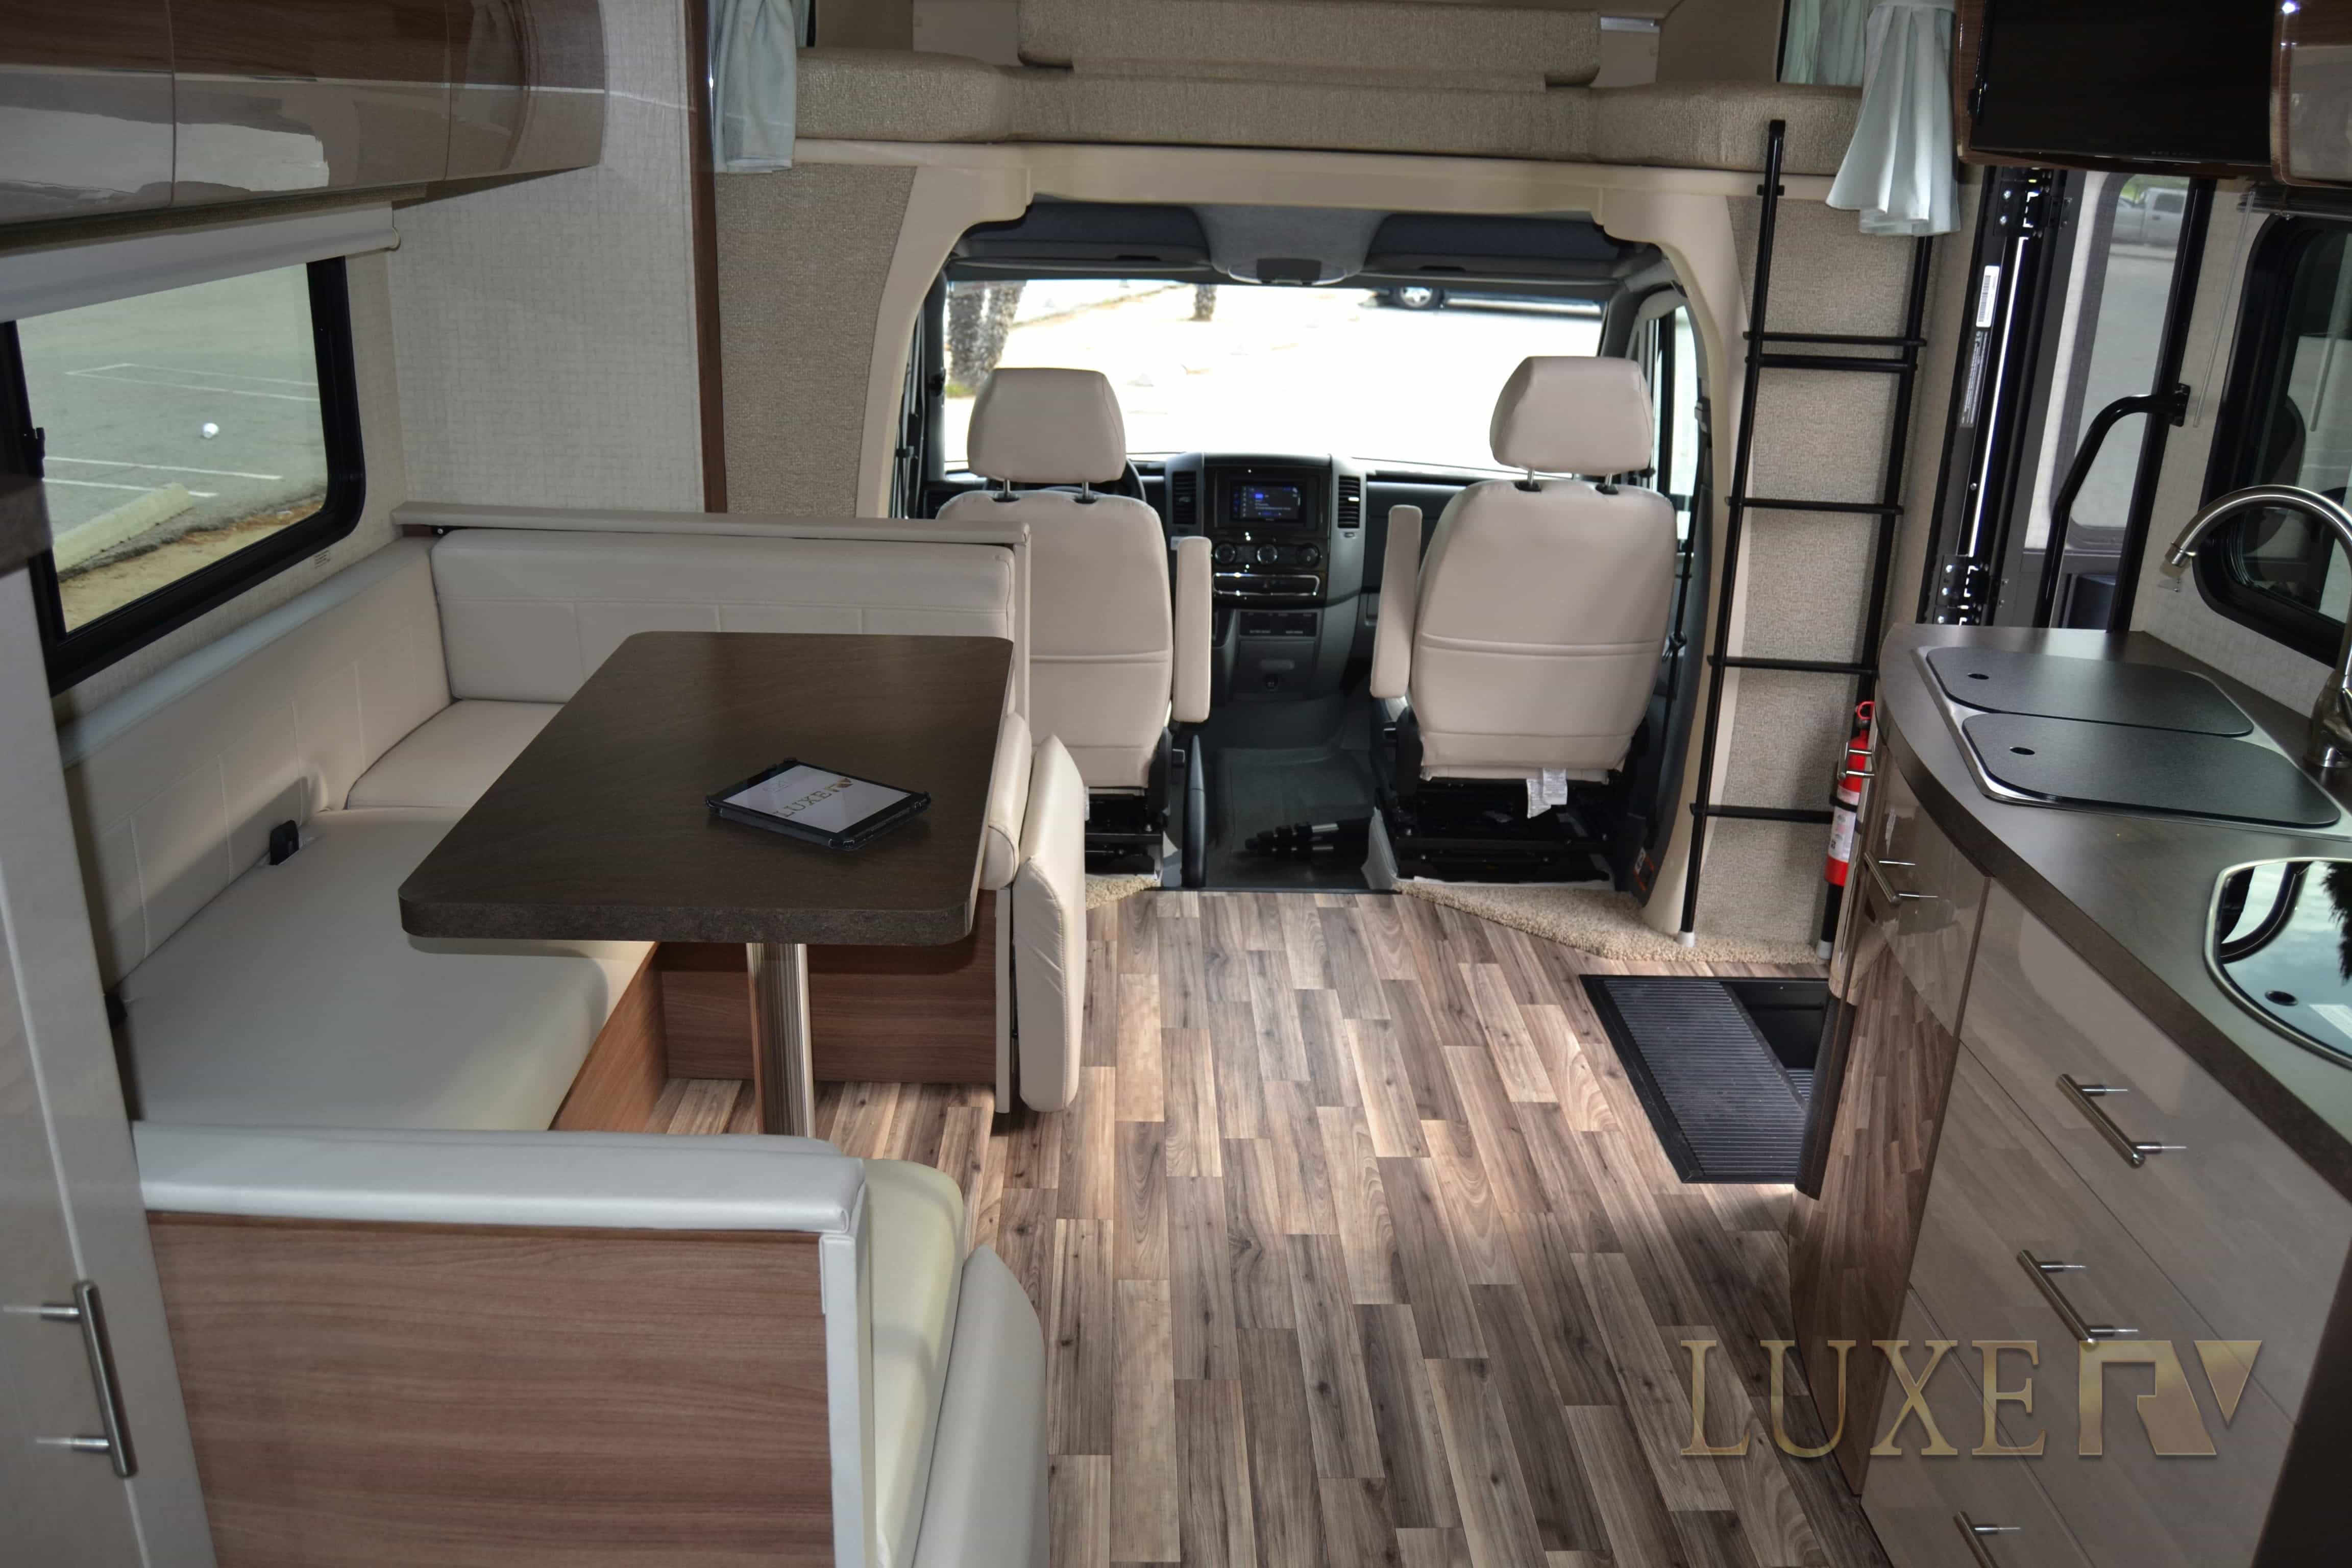 Mercedes RV for Rent Luxe RV